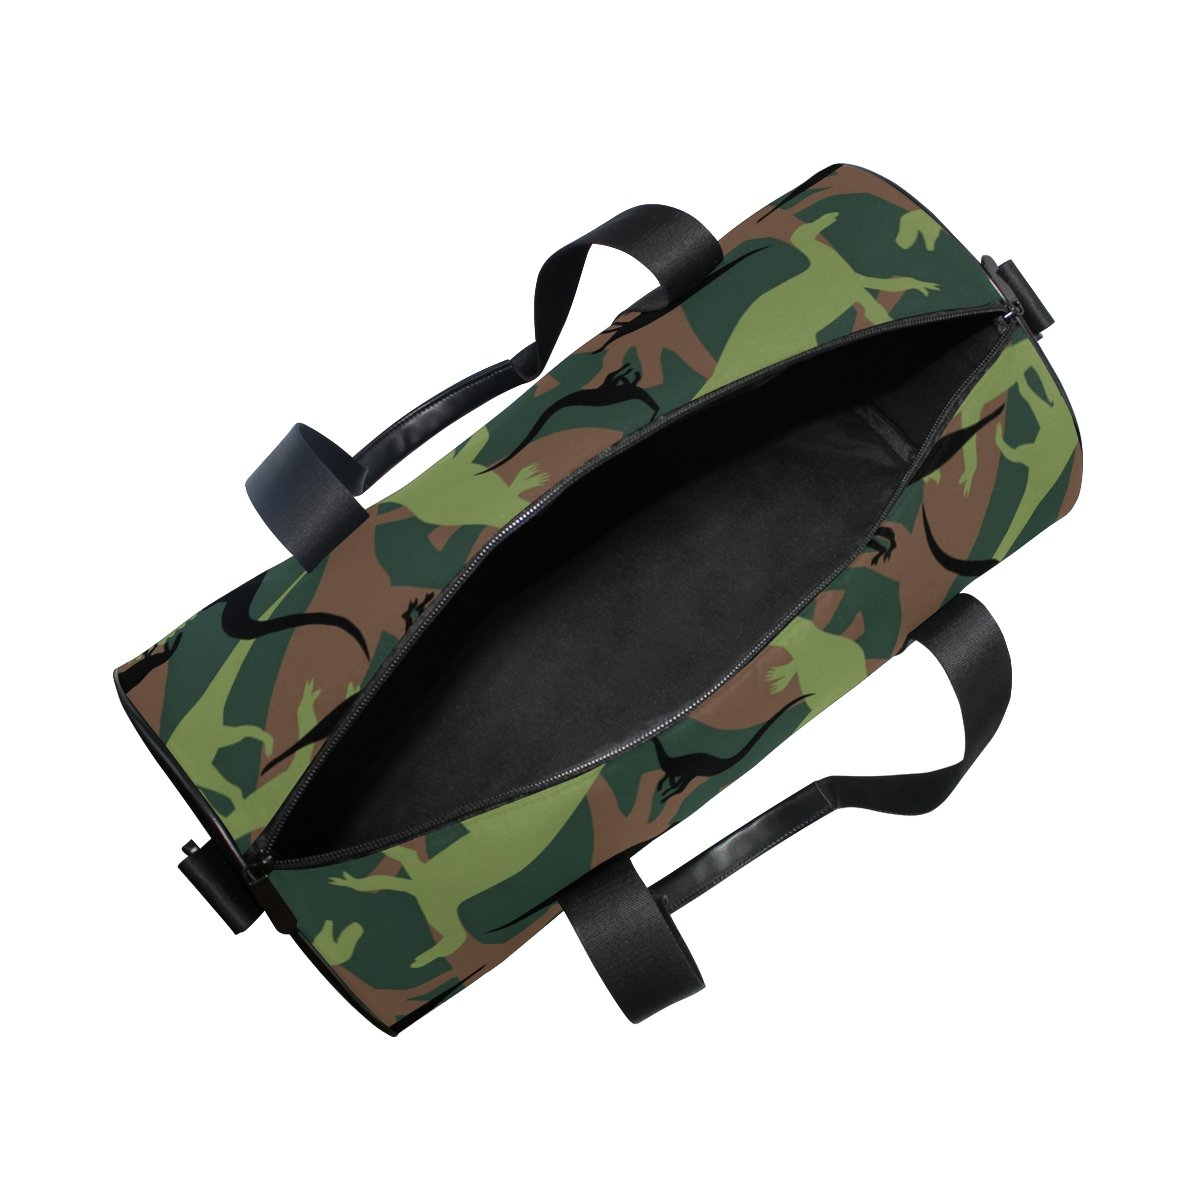 Naanle Dinosaur Camouflage Pattern Army Military Texture Camo Gym bag Sports Travel Duffle Bags for Men Women Boys Girls Kids by Naanle (Image #5)